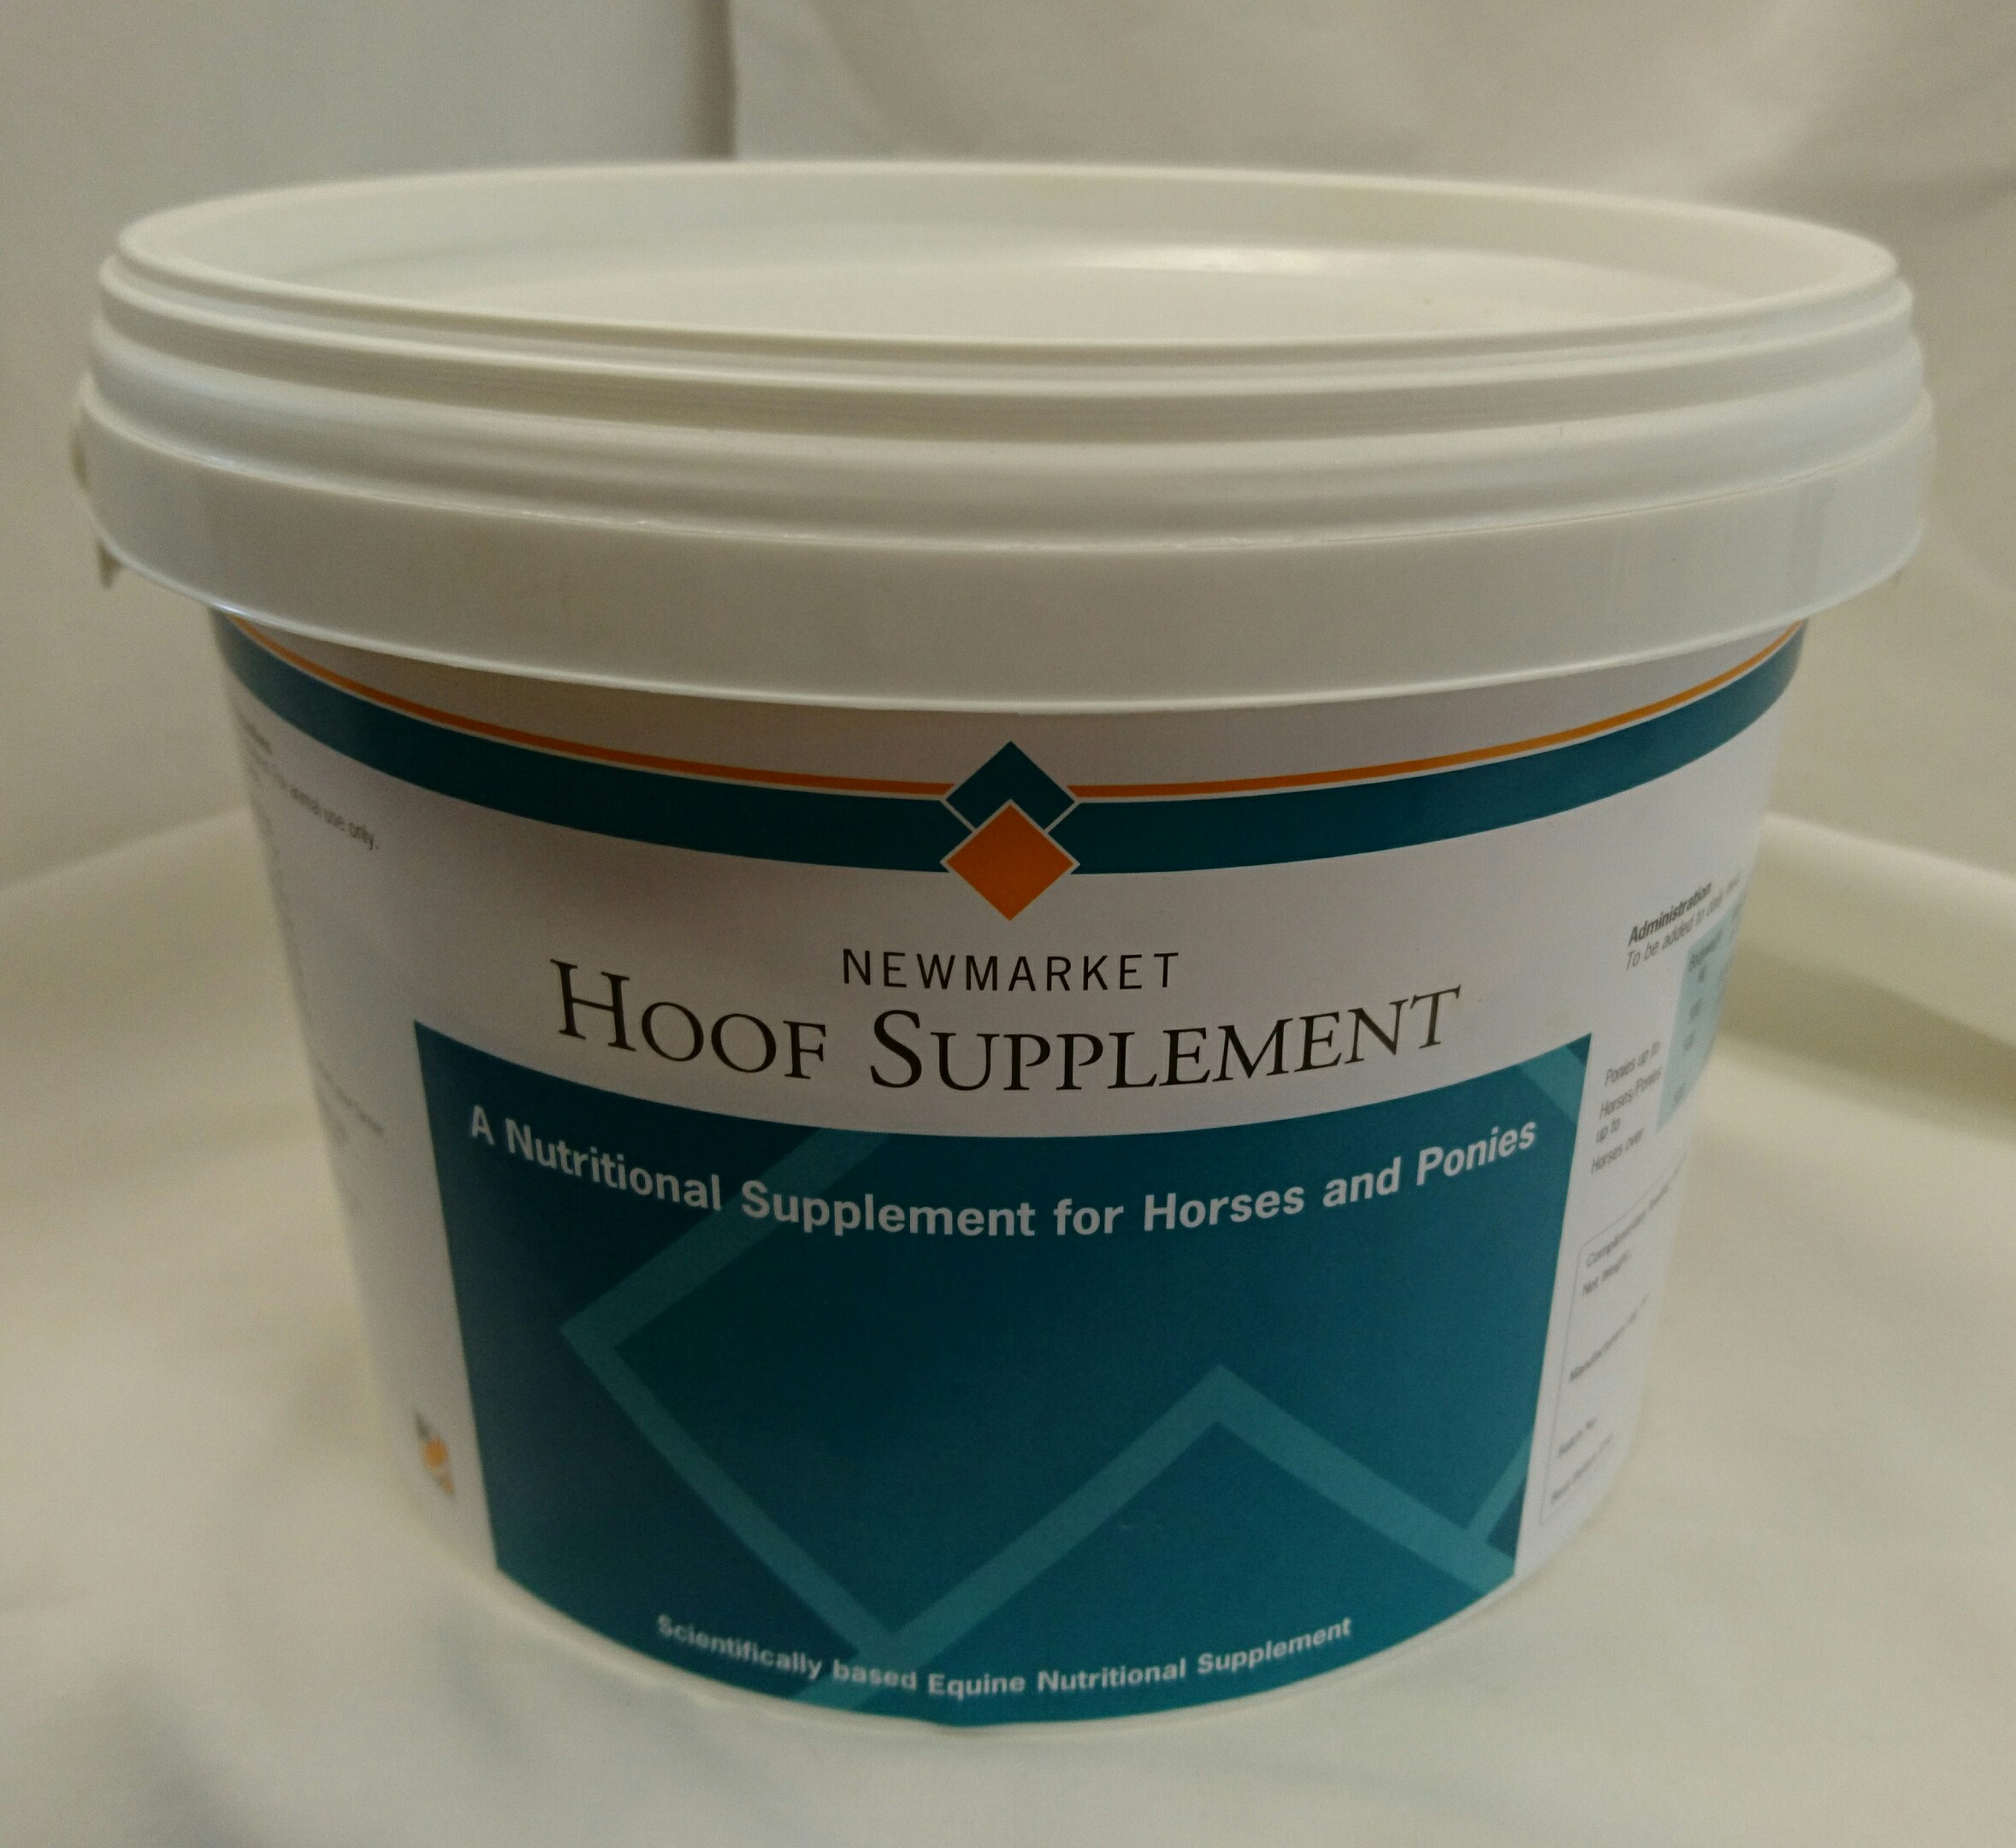 Newmarket Hoof Supplement